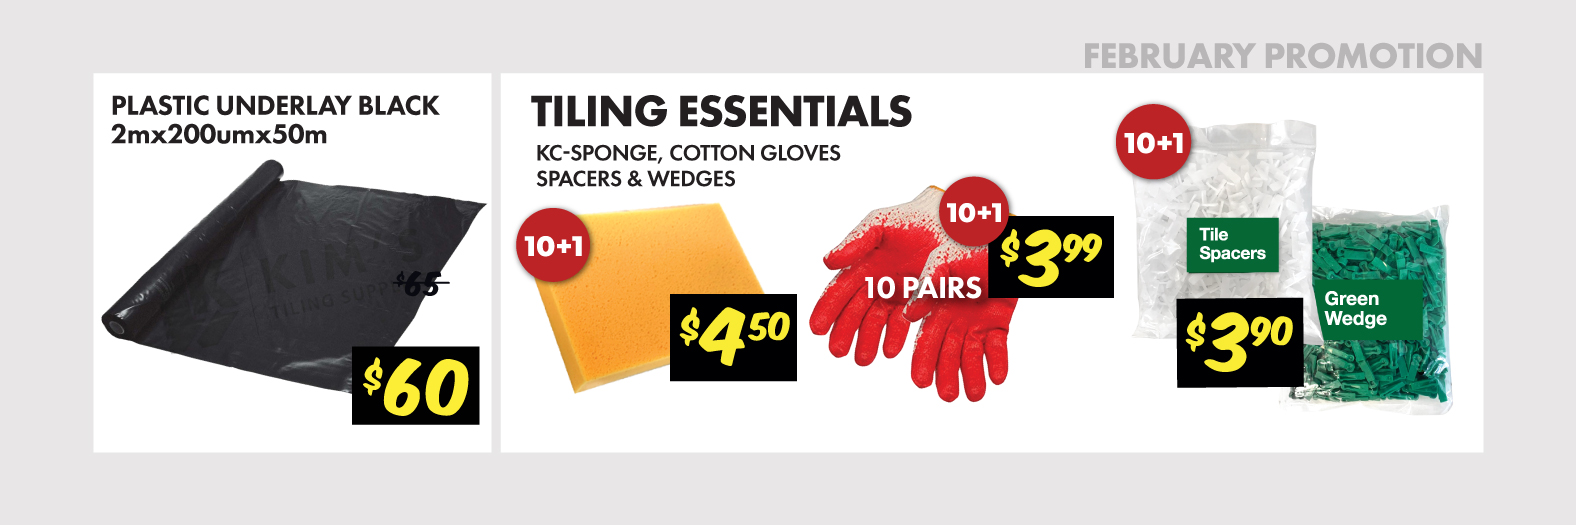 Glue and Tiling Tools Clearance